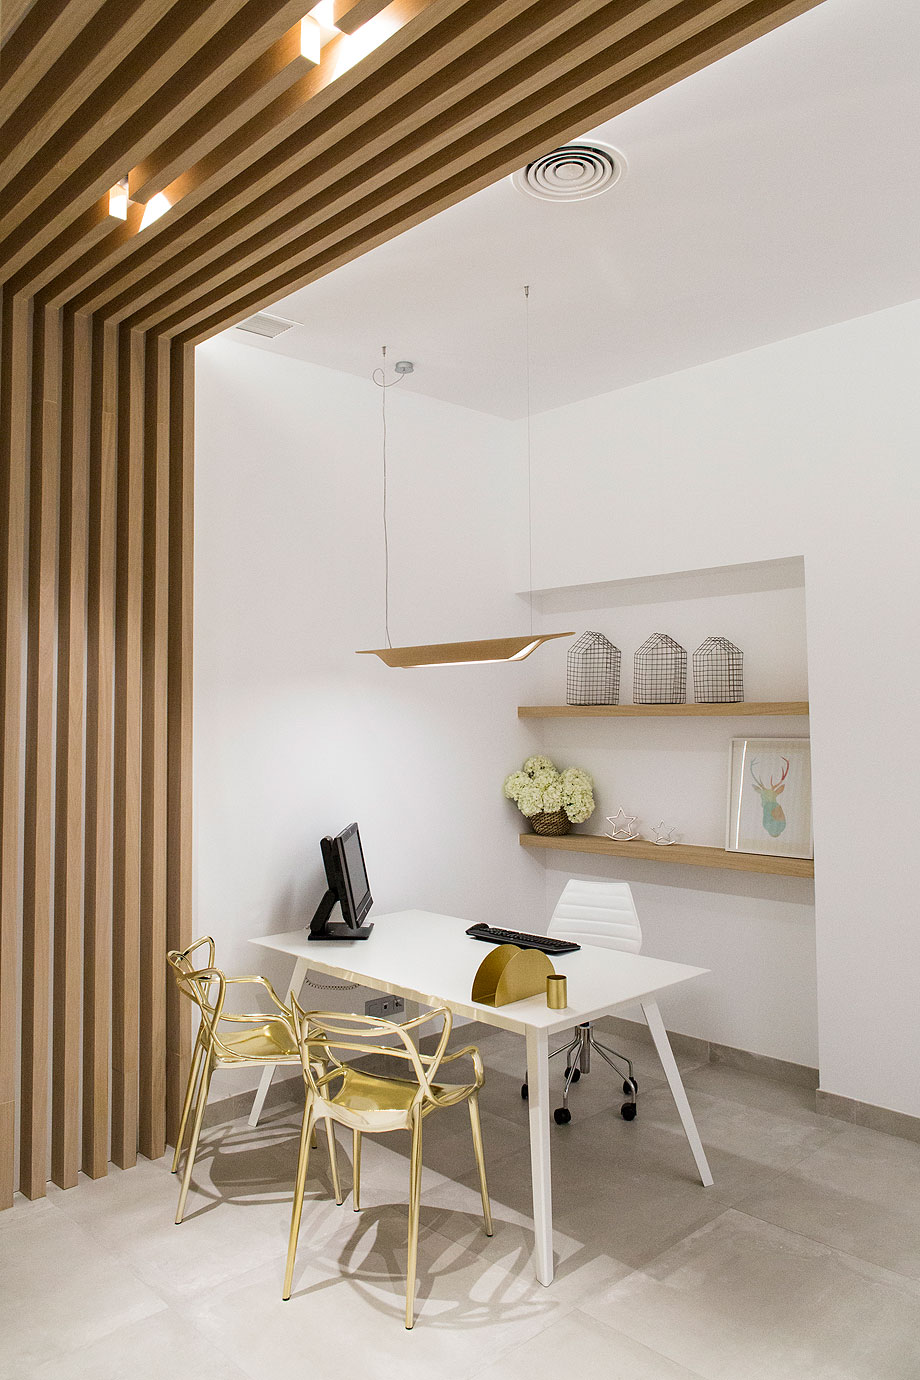 clinica-dental-jorda-ebano-arquitectura-interior (7)